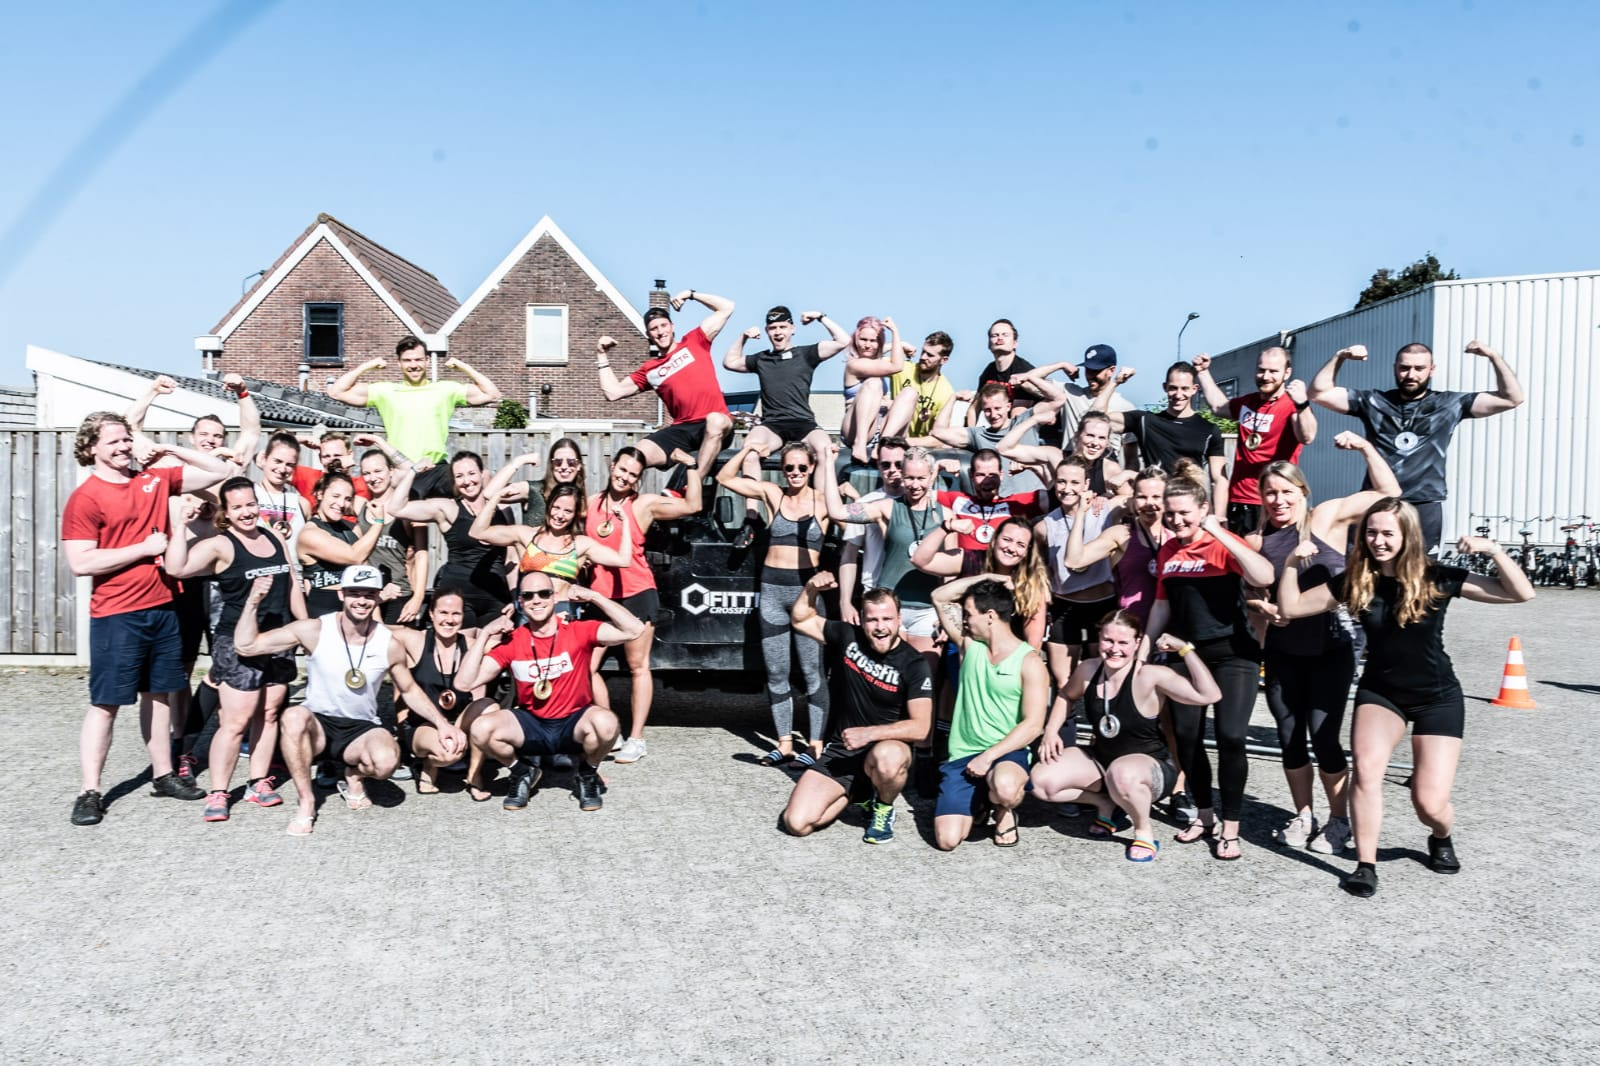 FITTR CrossFit Oosterhout - We maximize human potential